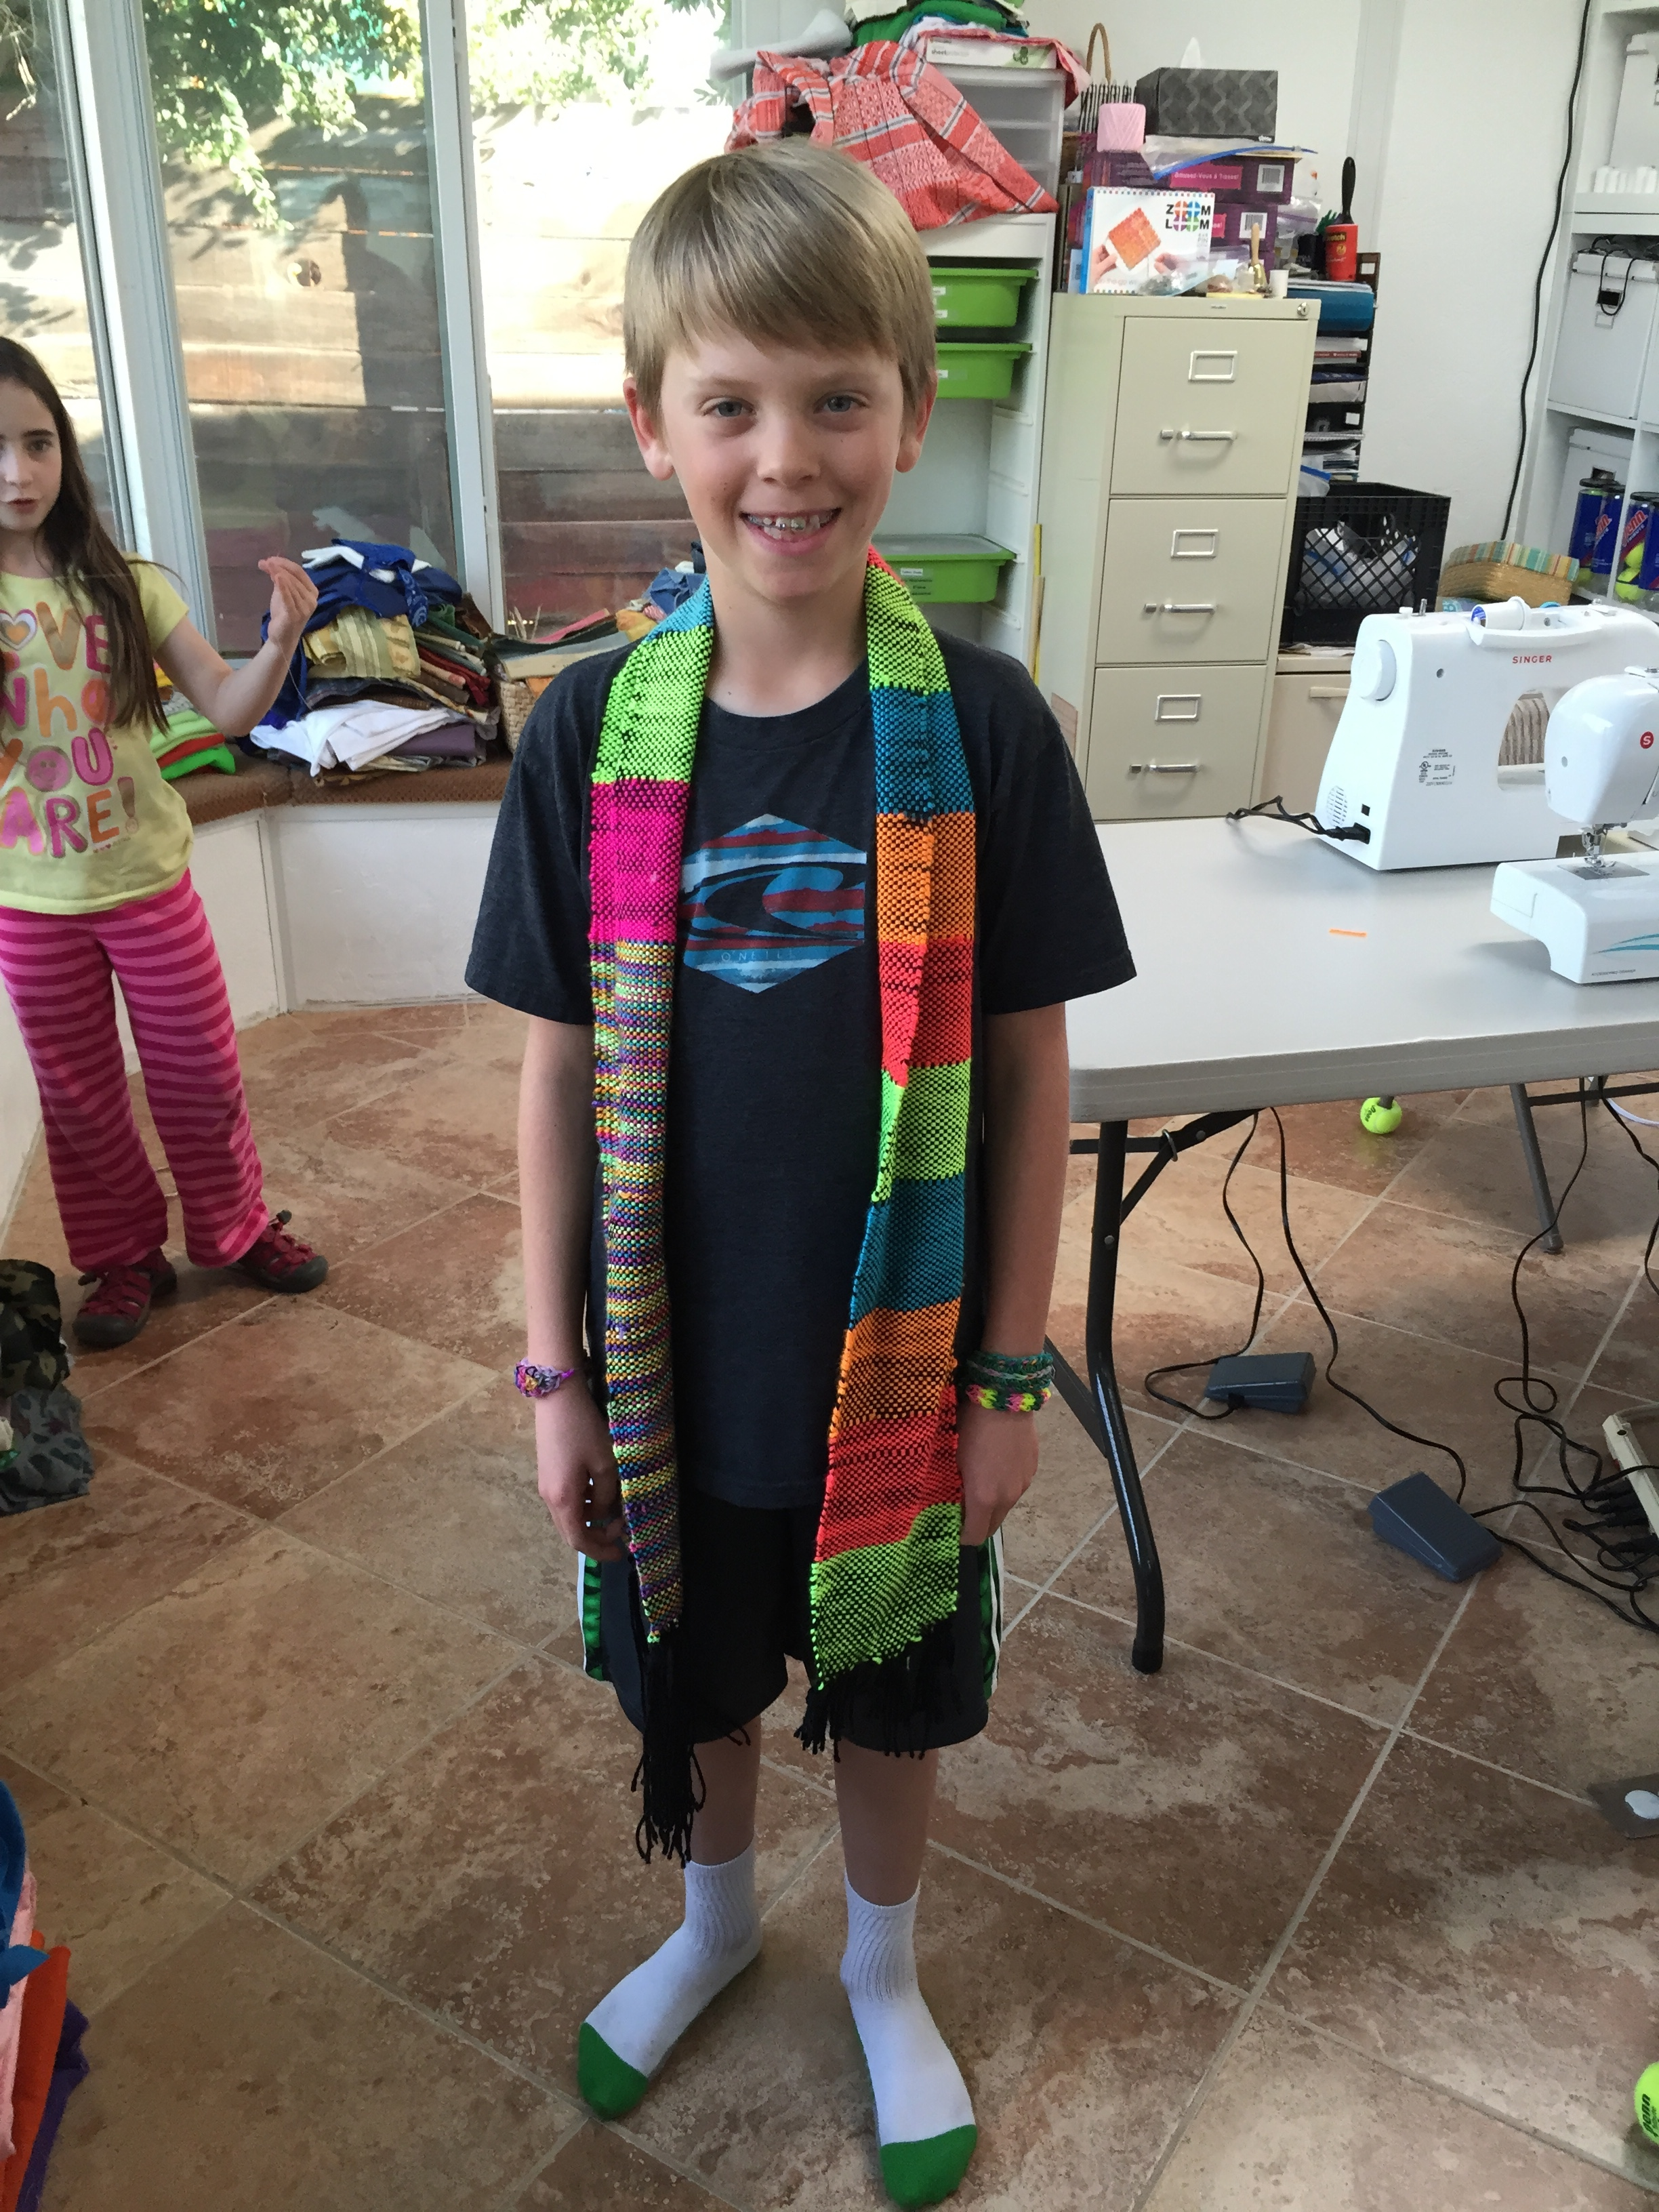 3rd grader woven scarf.